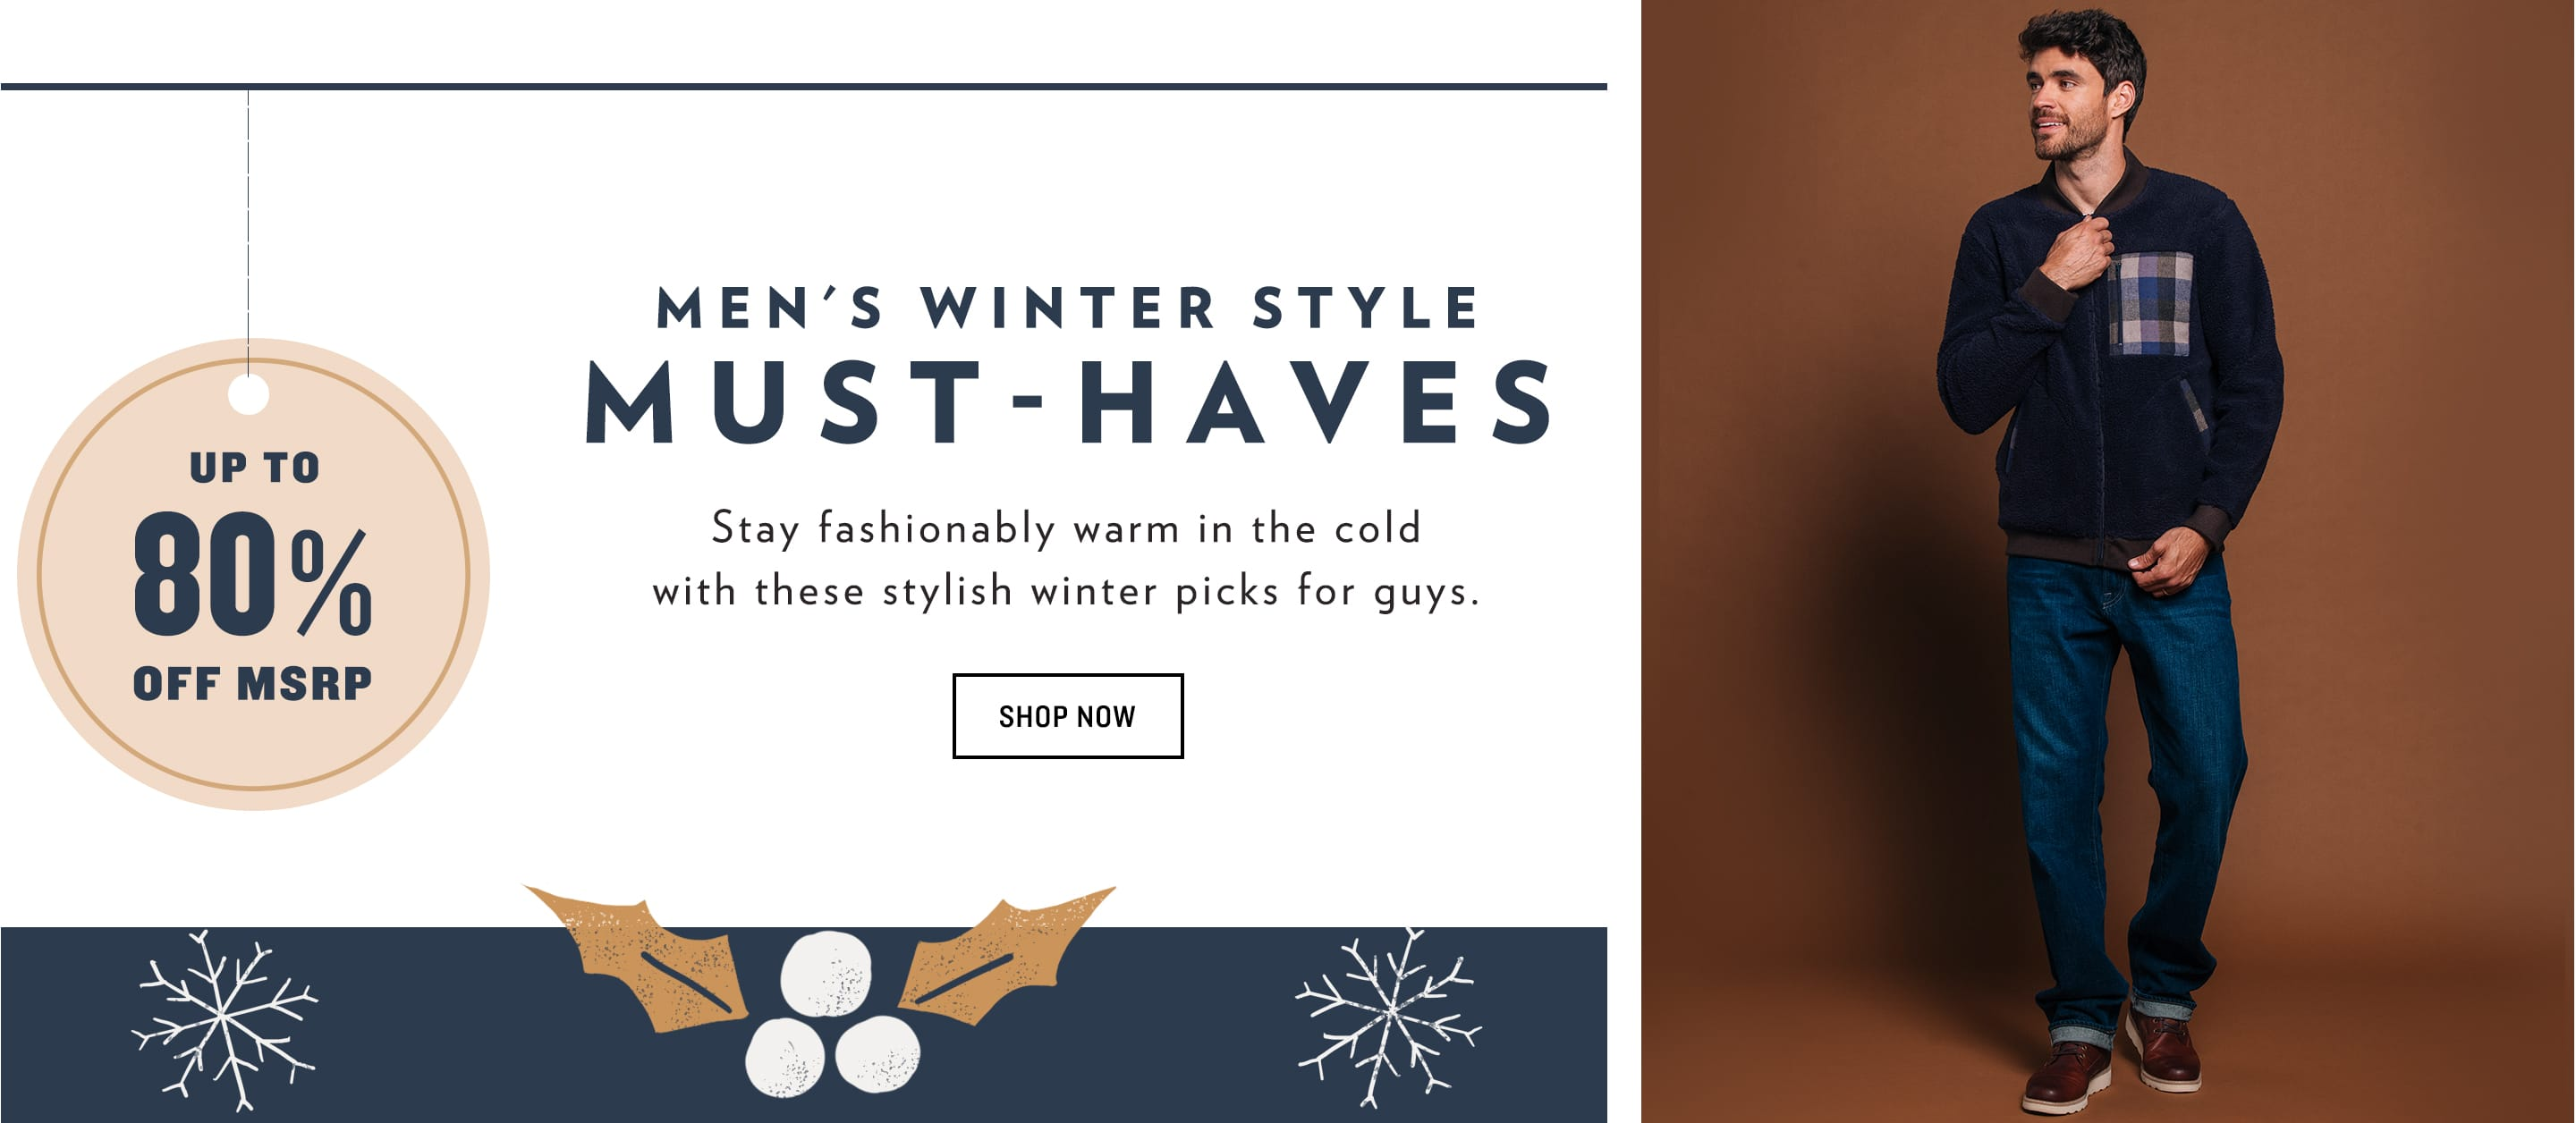 Shop All Men's Winter Style Must-Haves